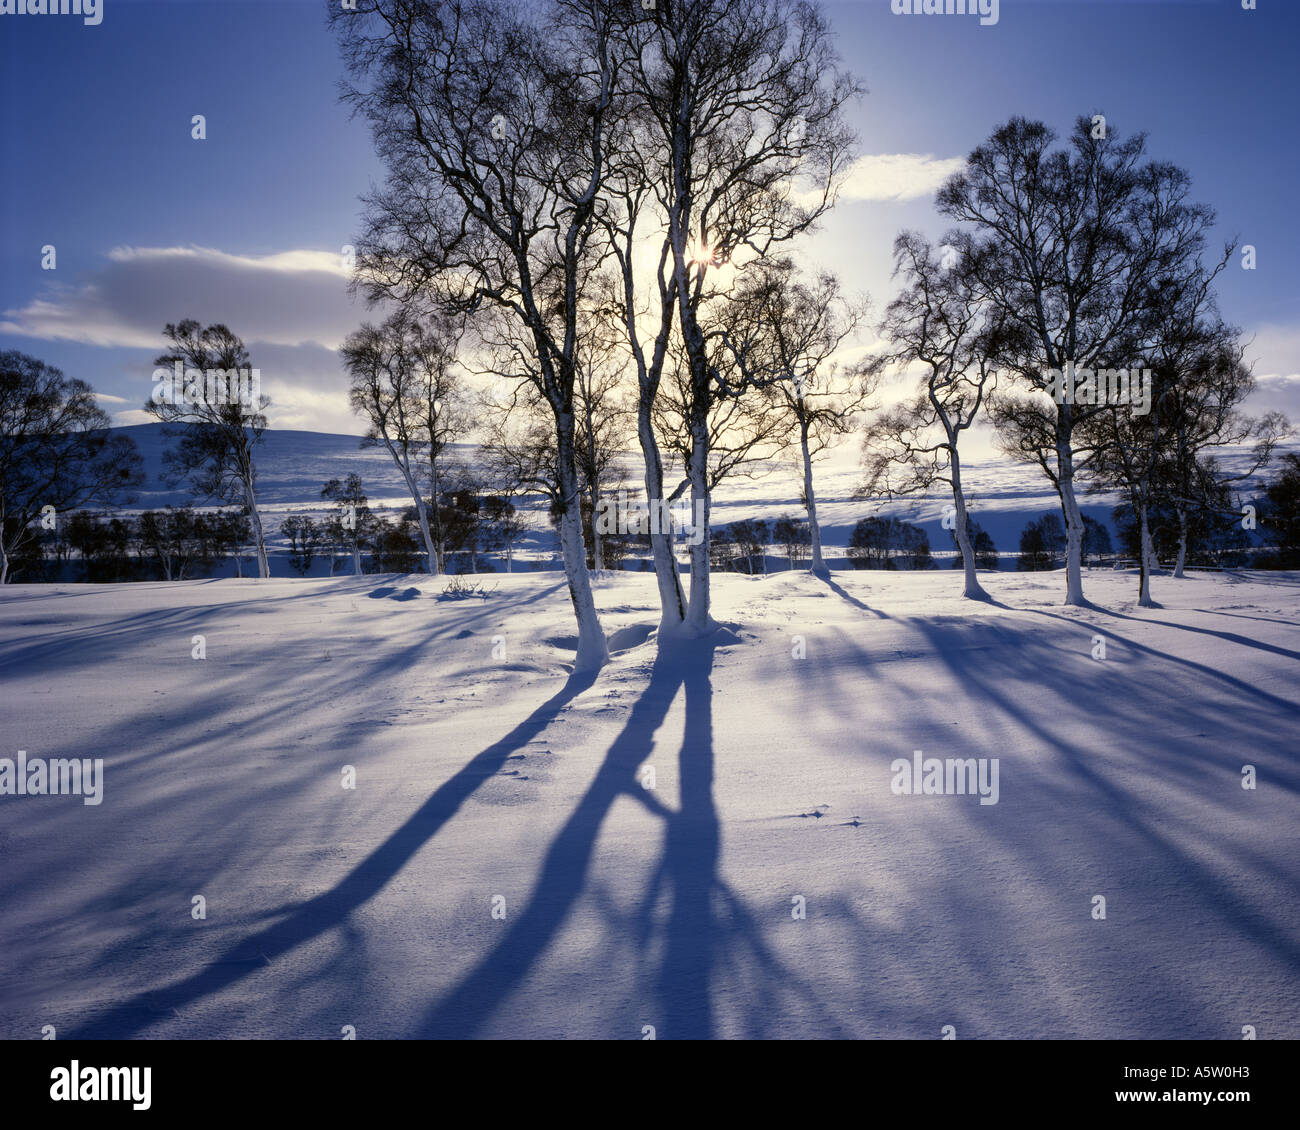 Gb - Ecosse : au début de l'hiver matin à Glen garry à tayside Photo Stock